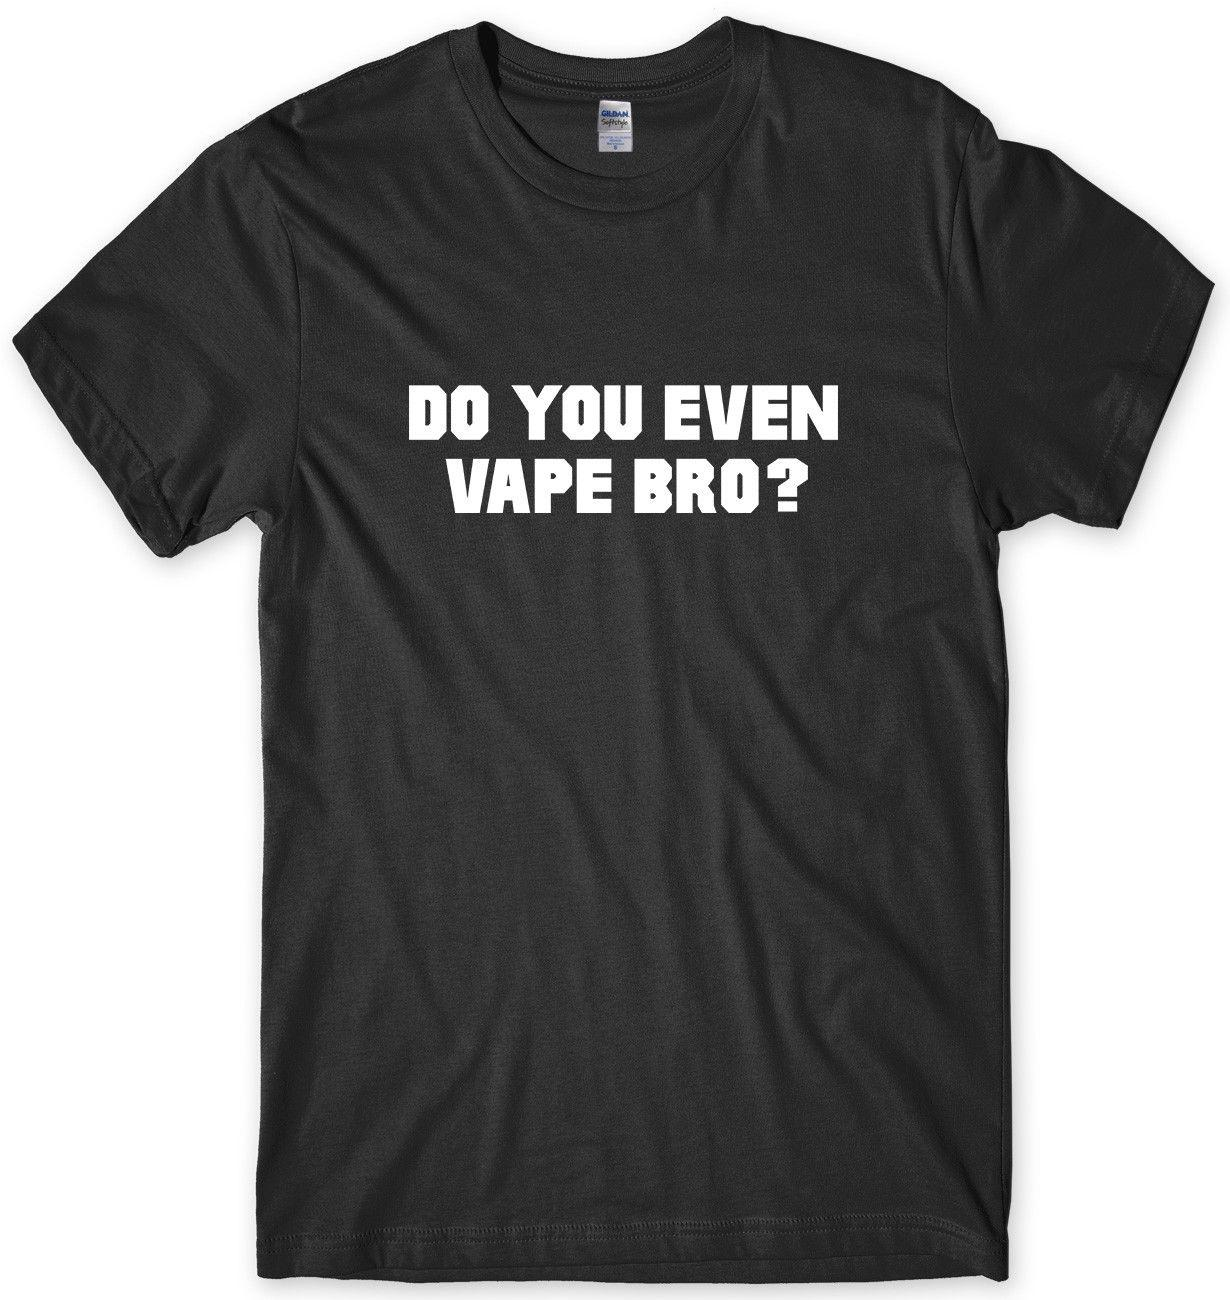 Do You Even Vape Bro? Mens Funny Unisex T-Shirt Style Round Style tshirt